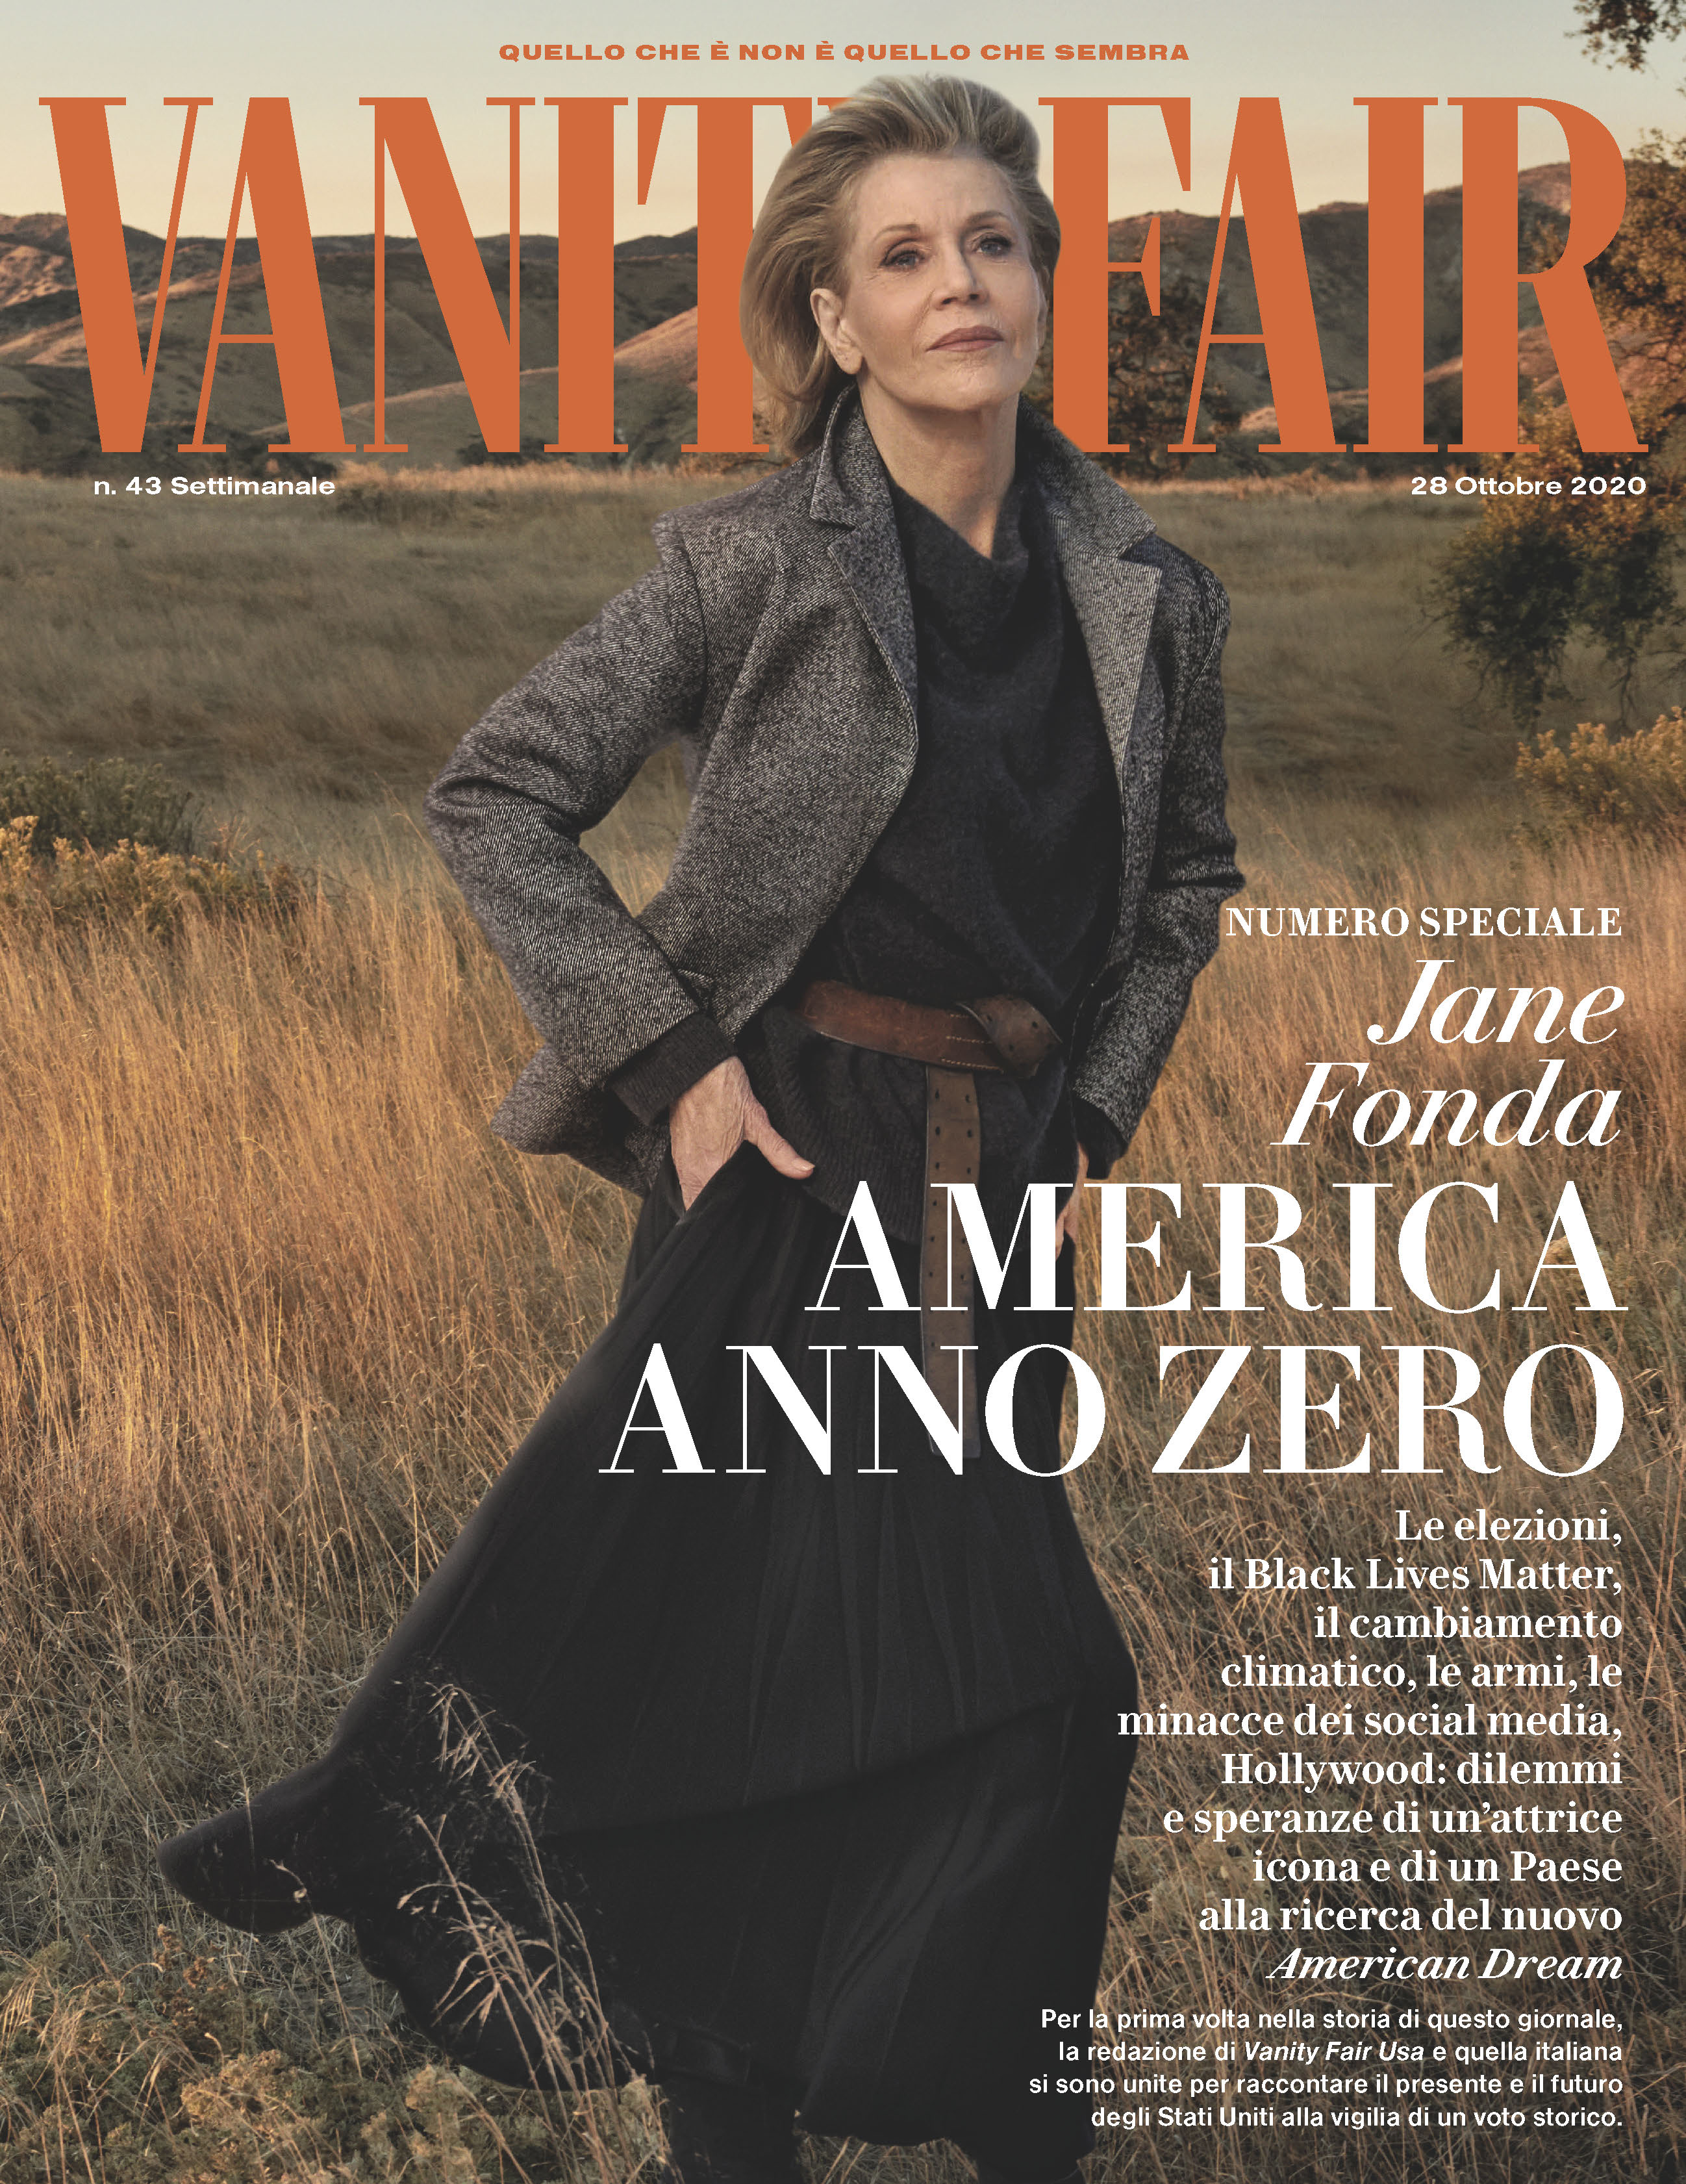 Jane Fonda on the cover of Vanity Fair Italia.